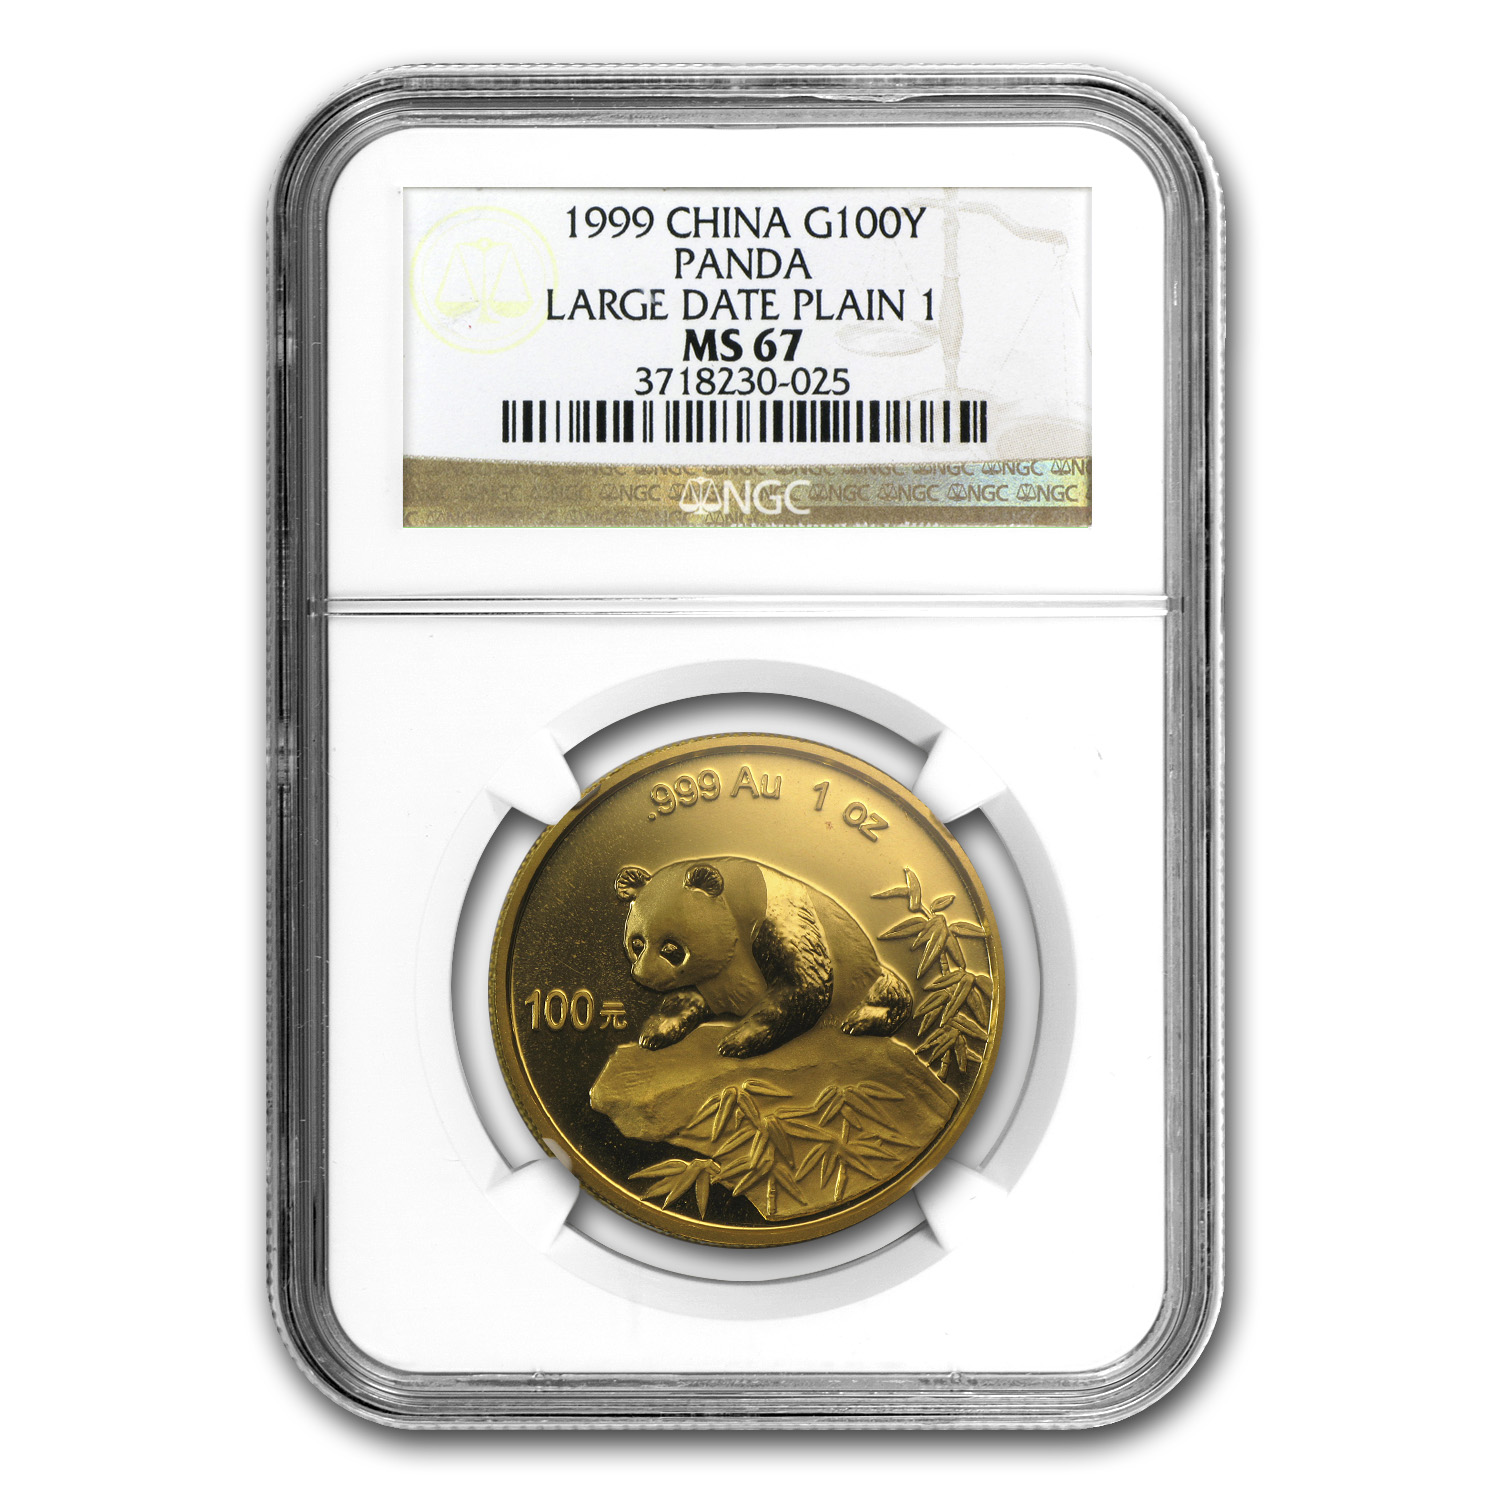 1999 1 oz Gold Chinese Panda MS-67 NGC - Large Date (Plain 1)